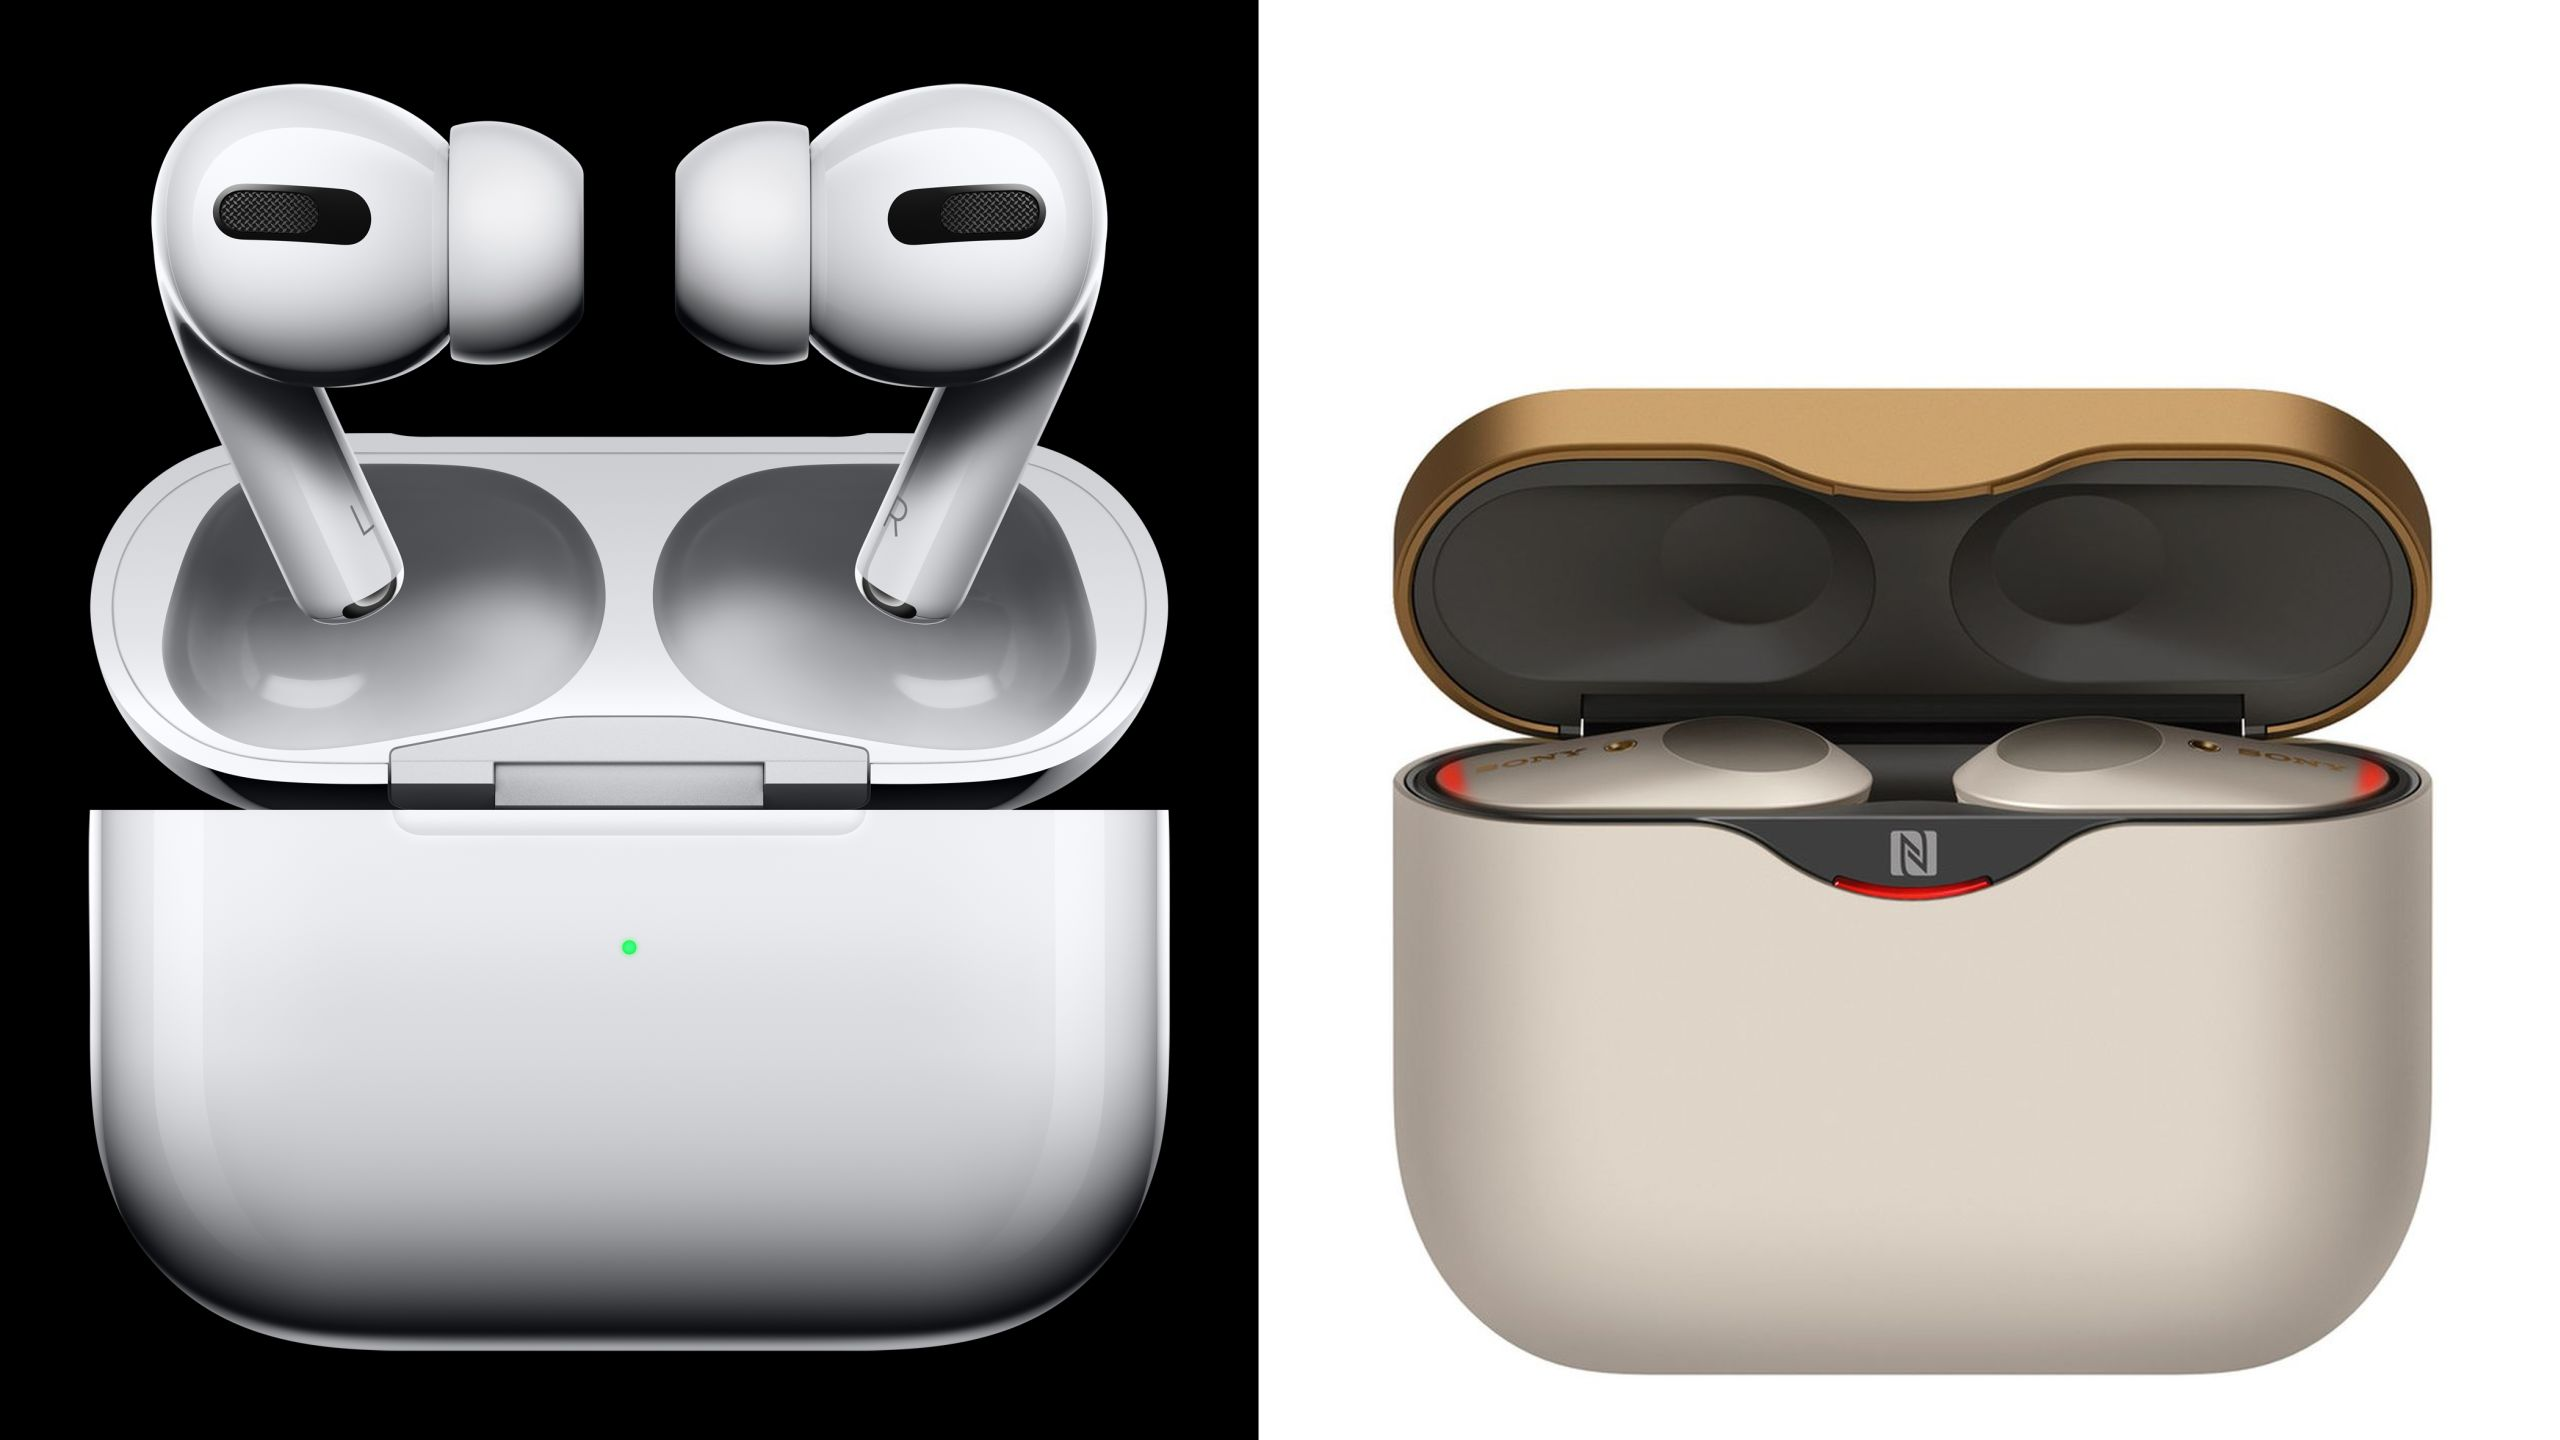 Review: Apple's AirPods Pro versus Sony's WF-1000XM3 ANC Truly Wireless Earphones